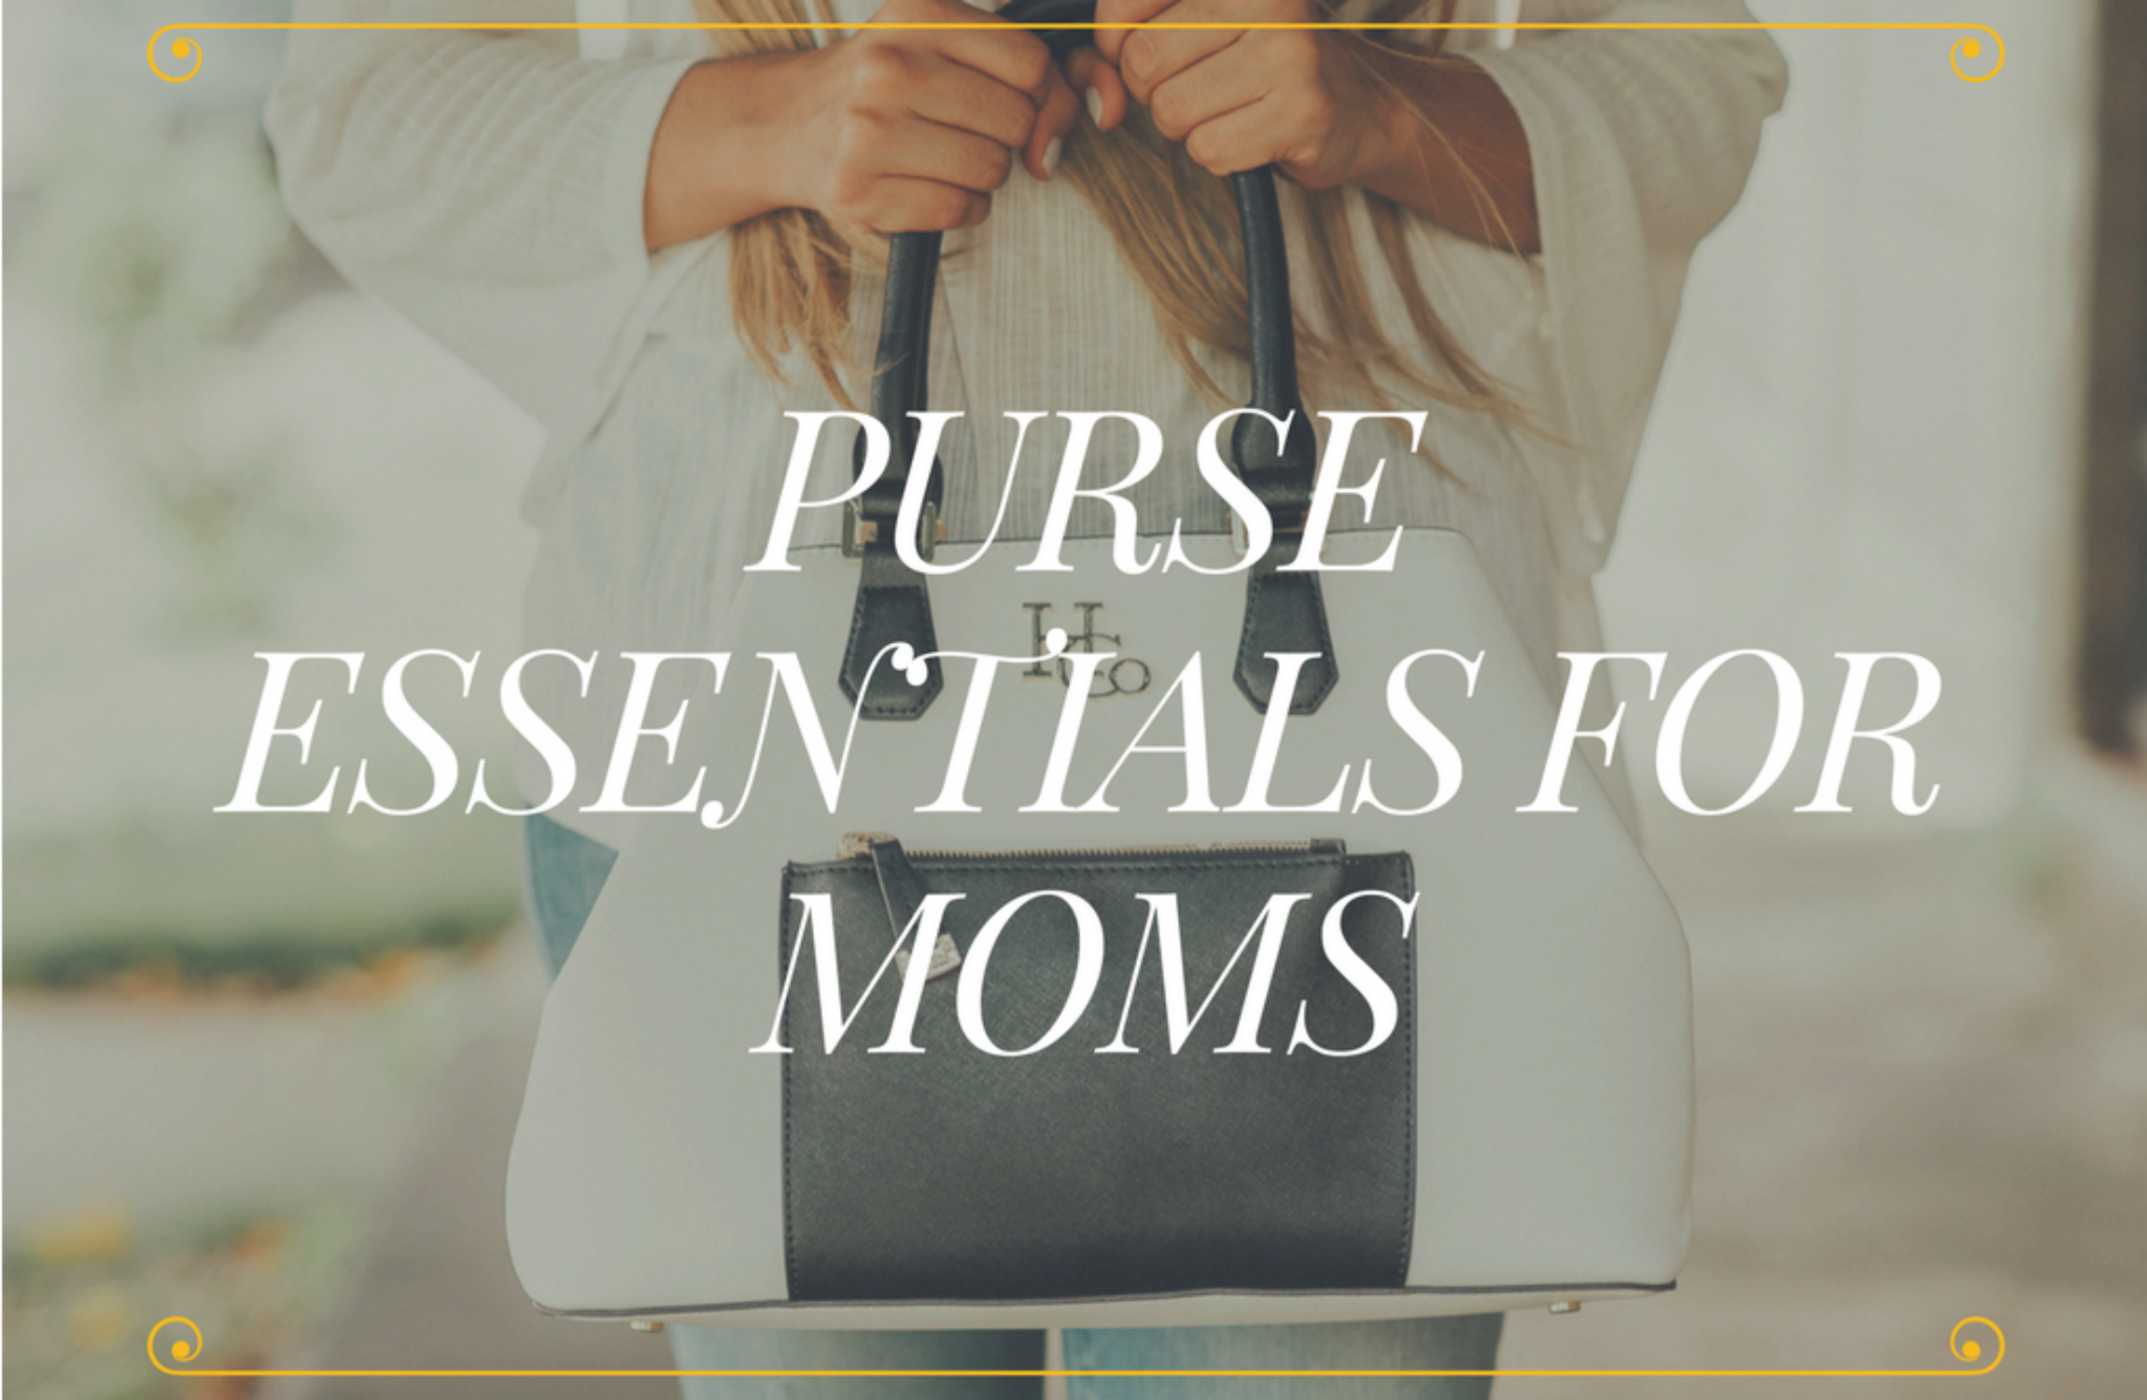 10 Things every mom should have in her purse